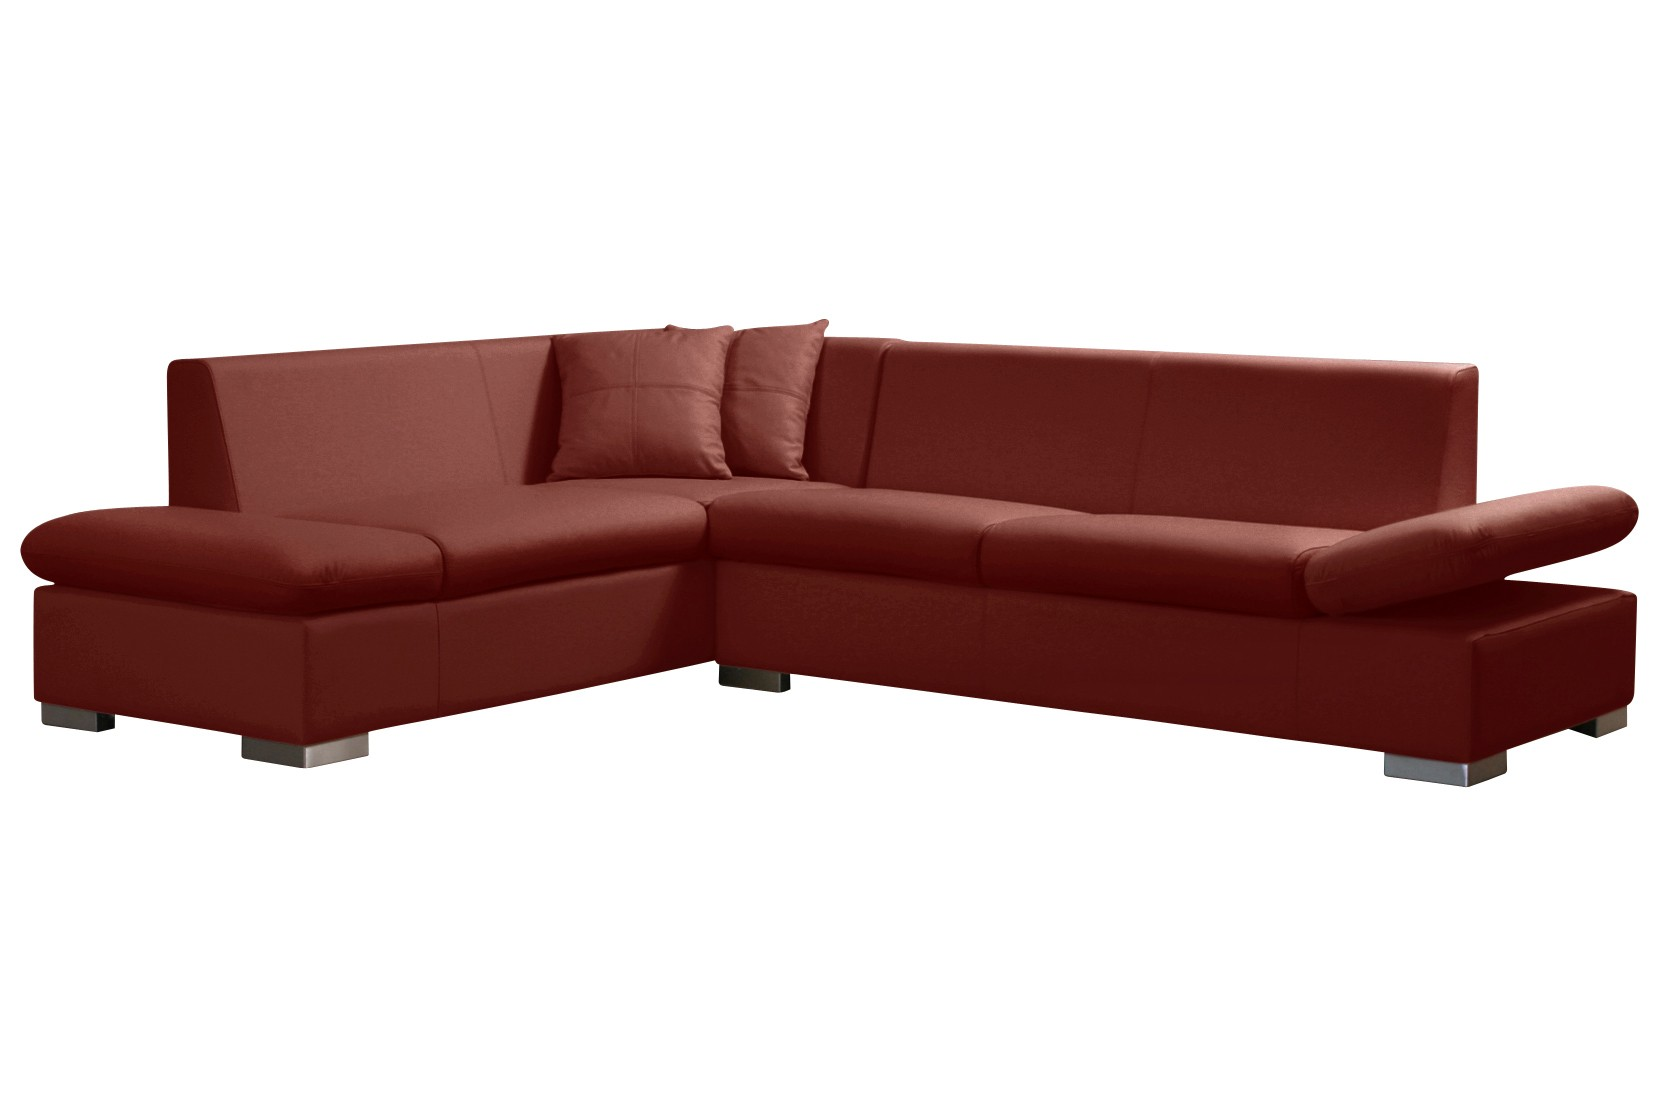 Sessel rot couch for Couch aufblasbar